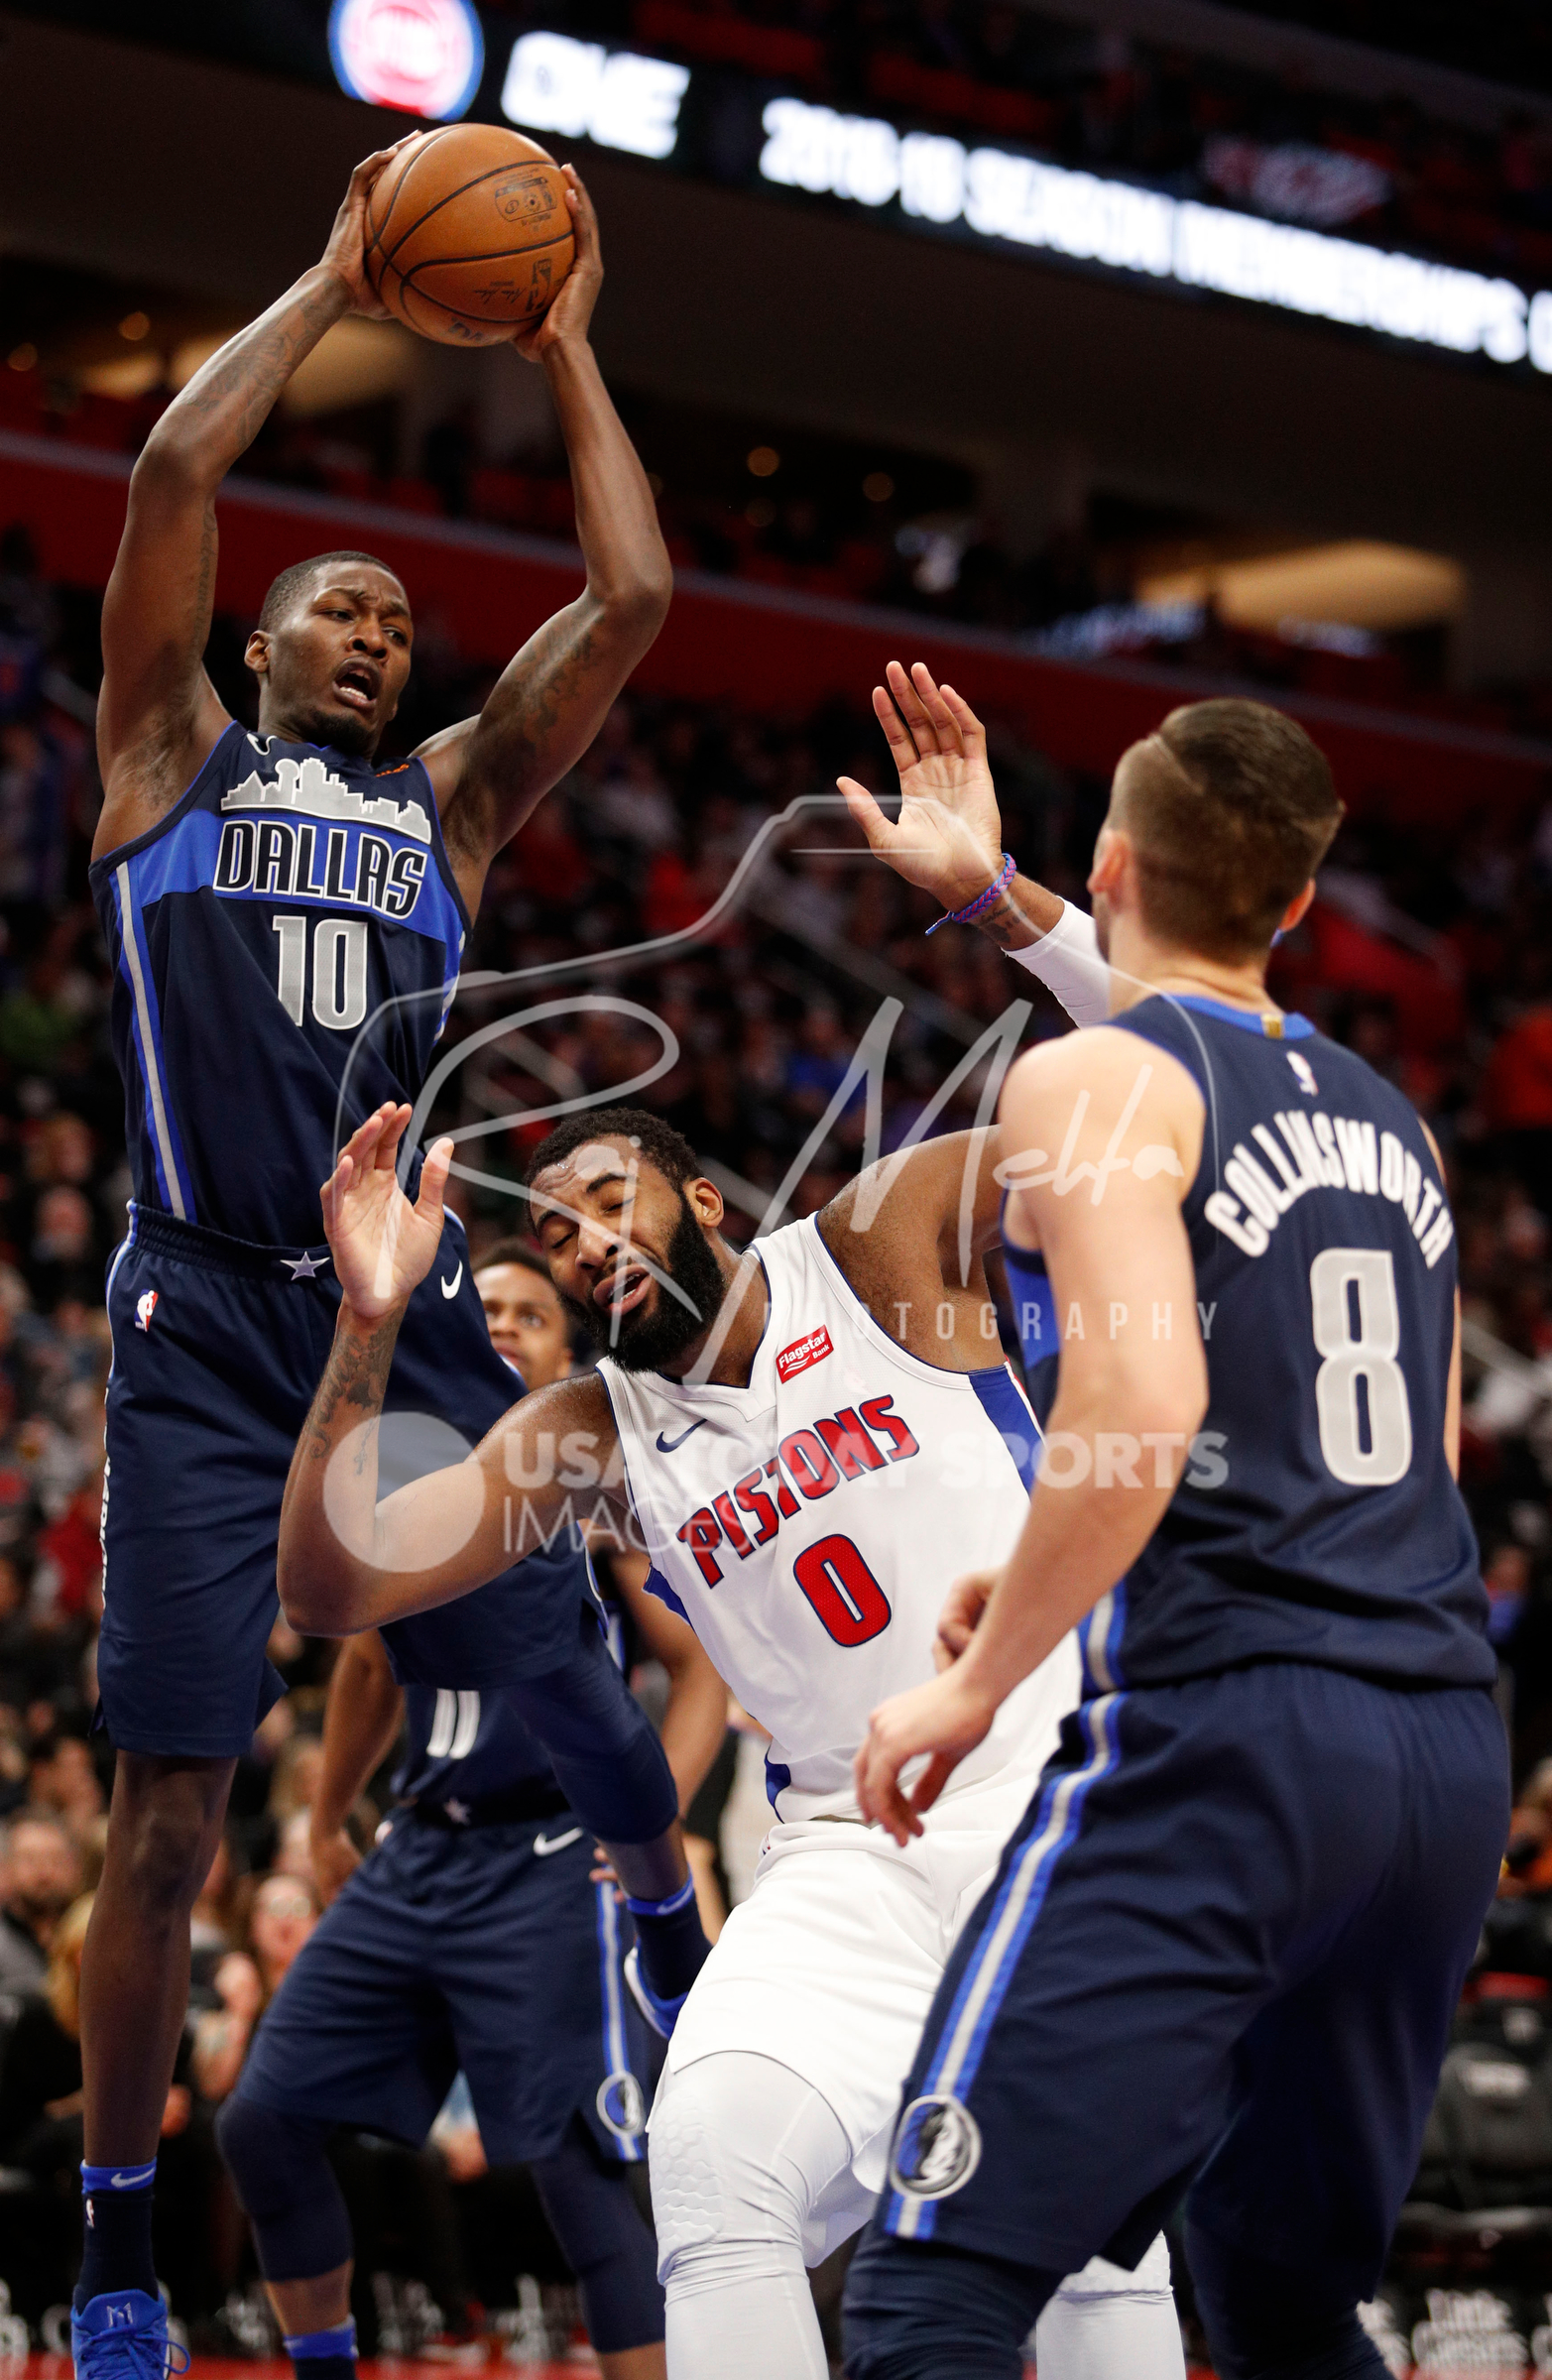 Apr 6, 2018; Detroit, MI, USA; Dallas Mavericks forward Dorian Finney-Smith (10) grabs the ball over Detroit Pistons center Andre Drummond (0) during the fourth quarter at Little Caesars Arena. Mandatory Credit: Raj Mehta-USA TODAY Sports